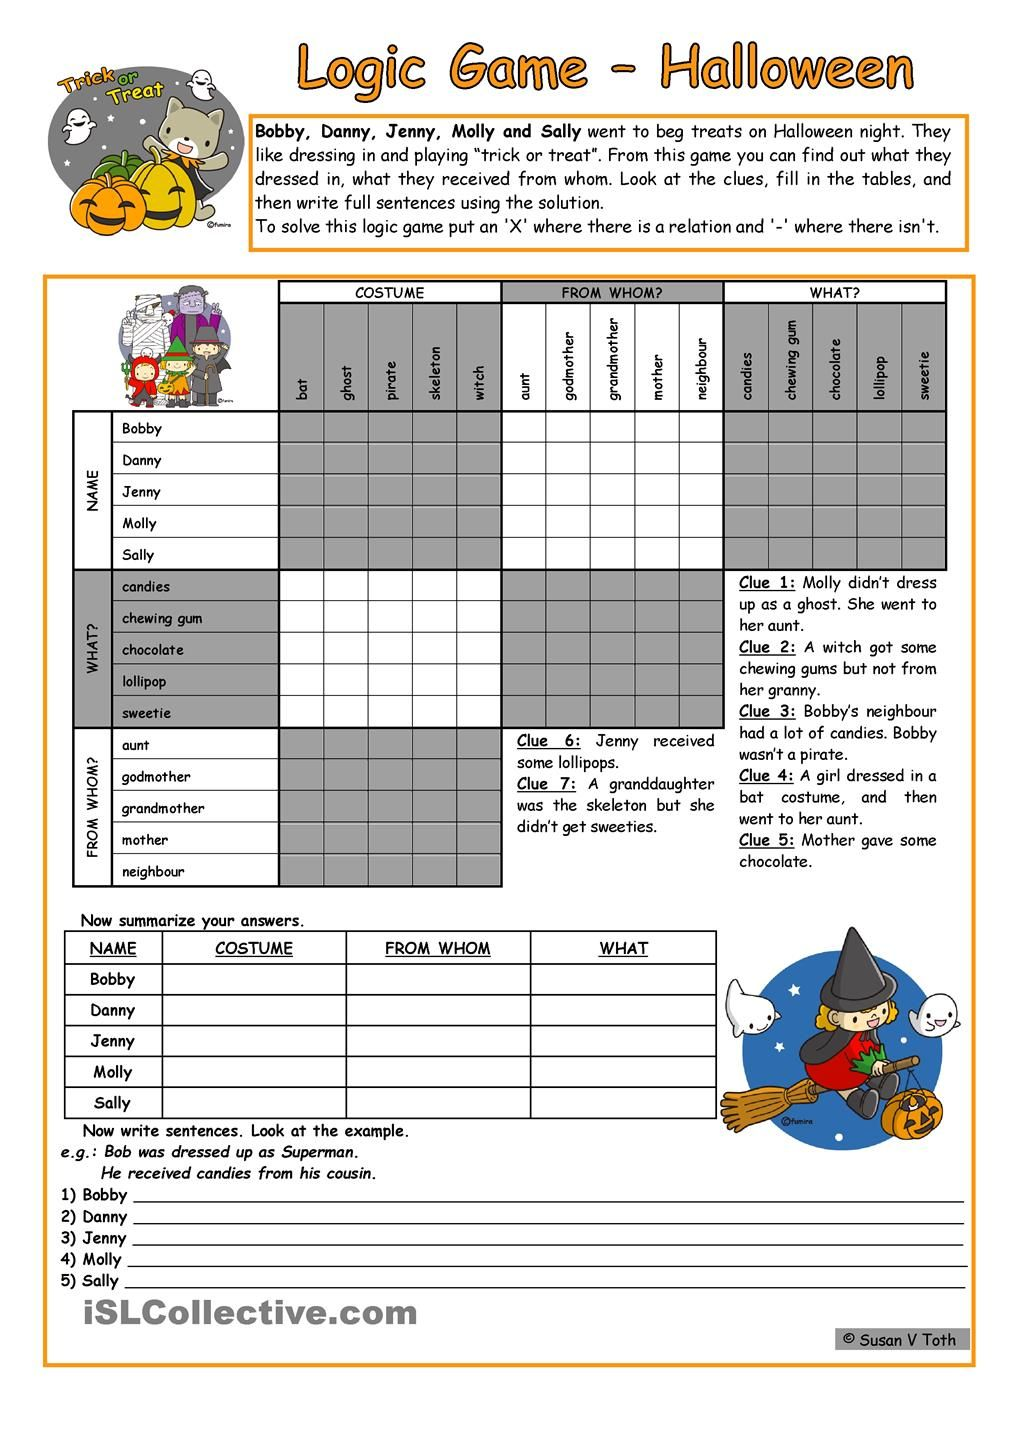 Logic game (34th) - Halloween * elementary * with key * with B&W